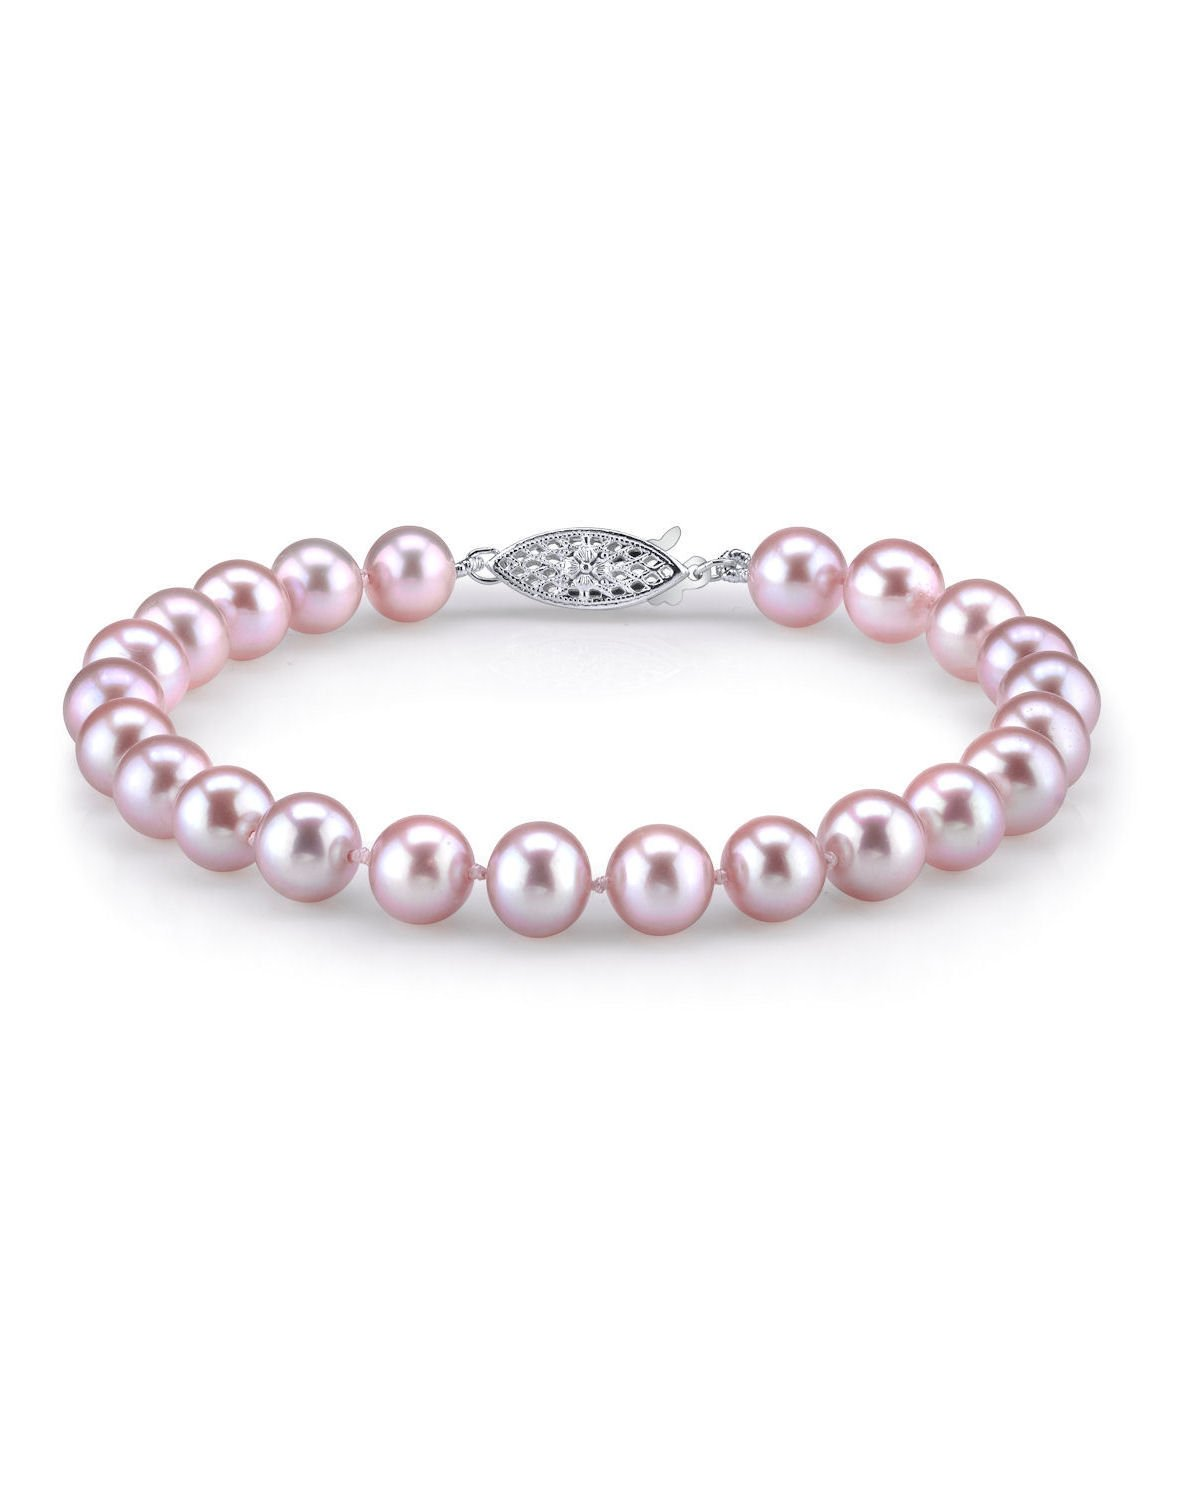 THE PEARL SOURCE Sterling Silver 7-8mm AAA Quality Round Pink Freshwater Cultured Pearl Bracelet for Women by The Pearl Source